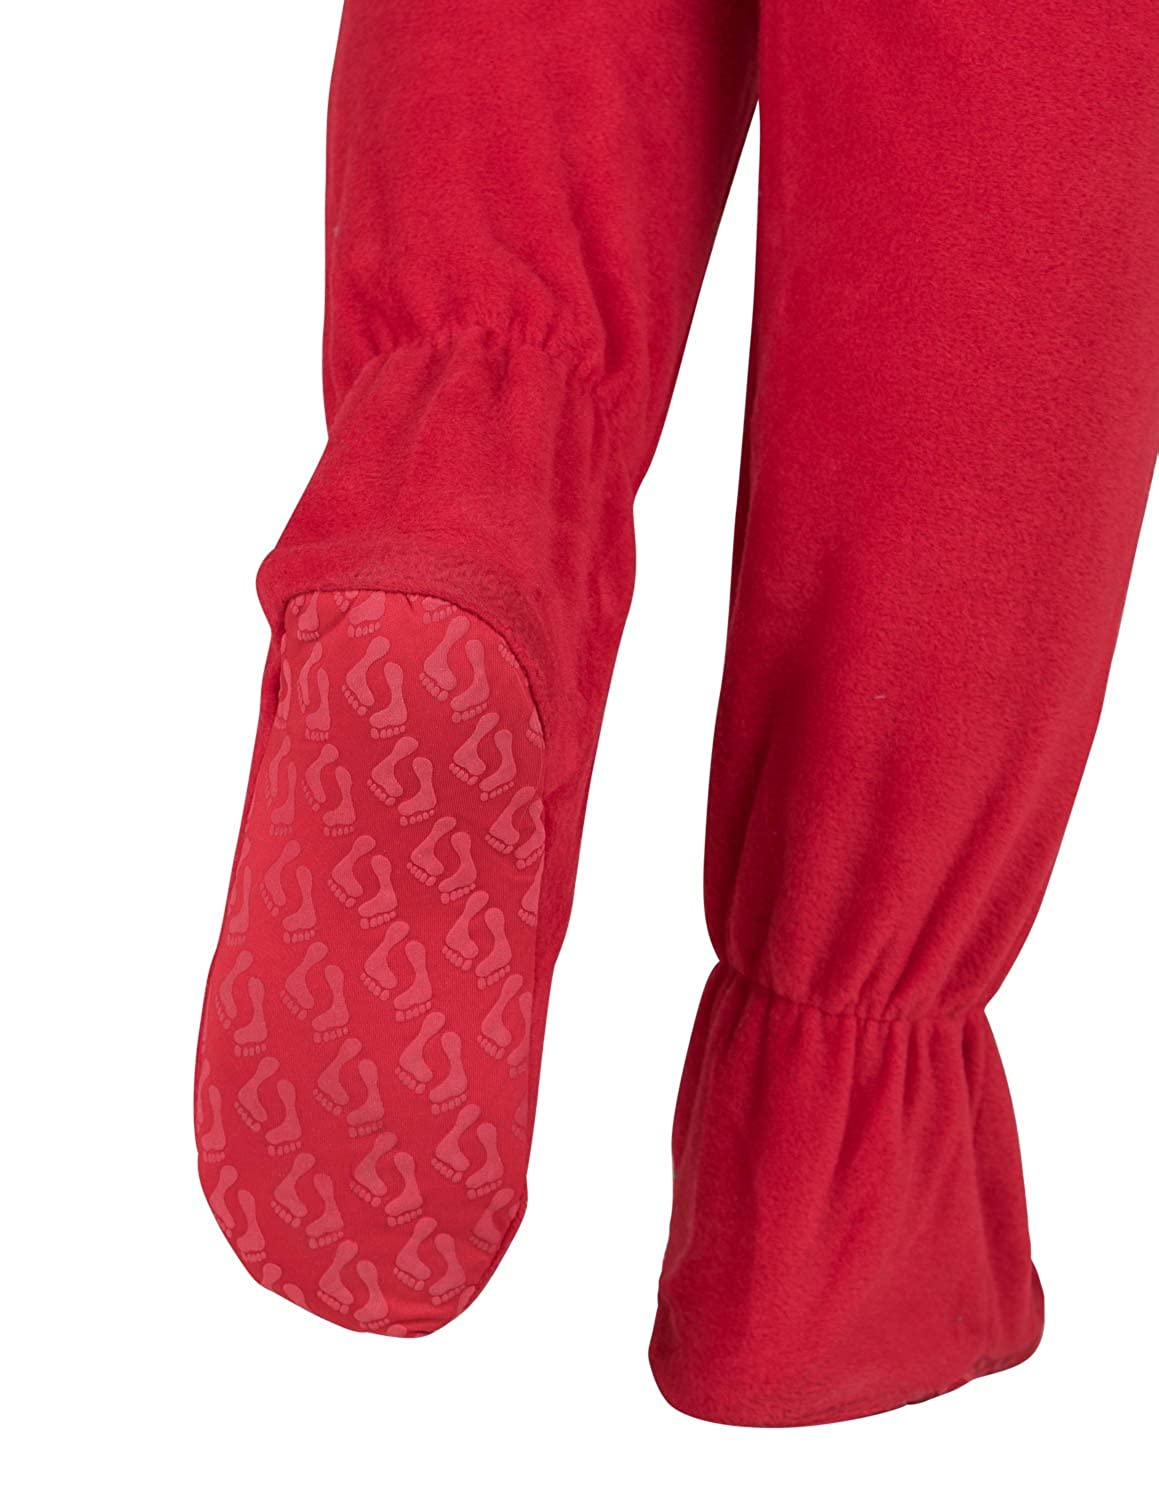 58765babb787 Footed Pajamas Bright Red Toddler Fleece - fashioncare.in